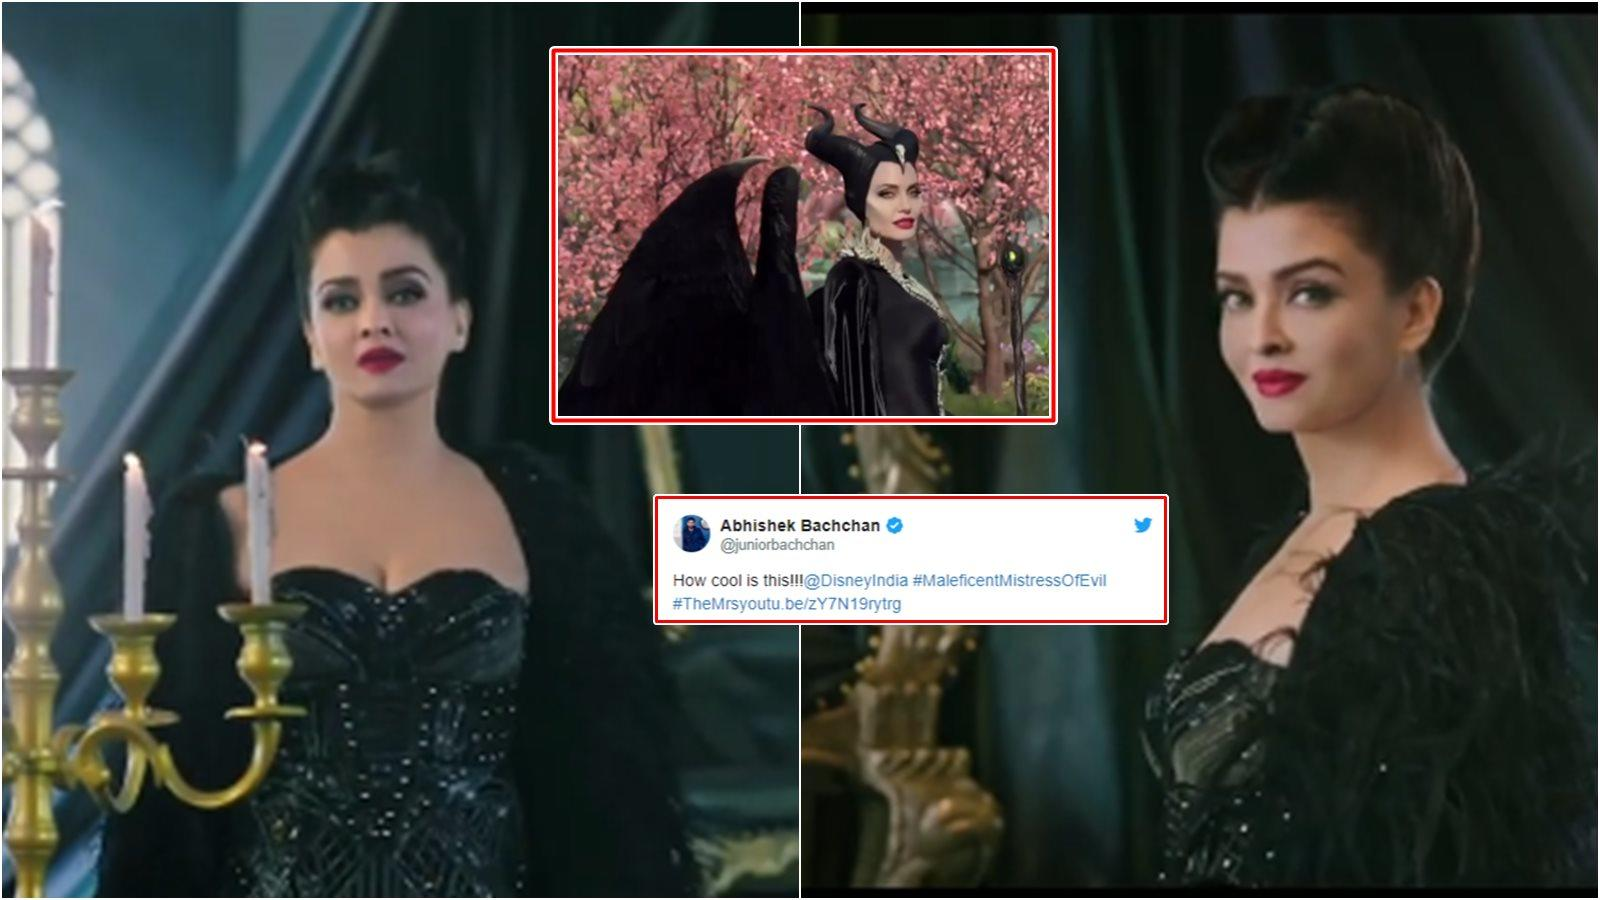 Abhishek Bachchan Is In Awe Of Wifey Aishwarya Rai Bachchan S Transformation In Maleficent Mistress Of Evil Hindi Trailer